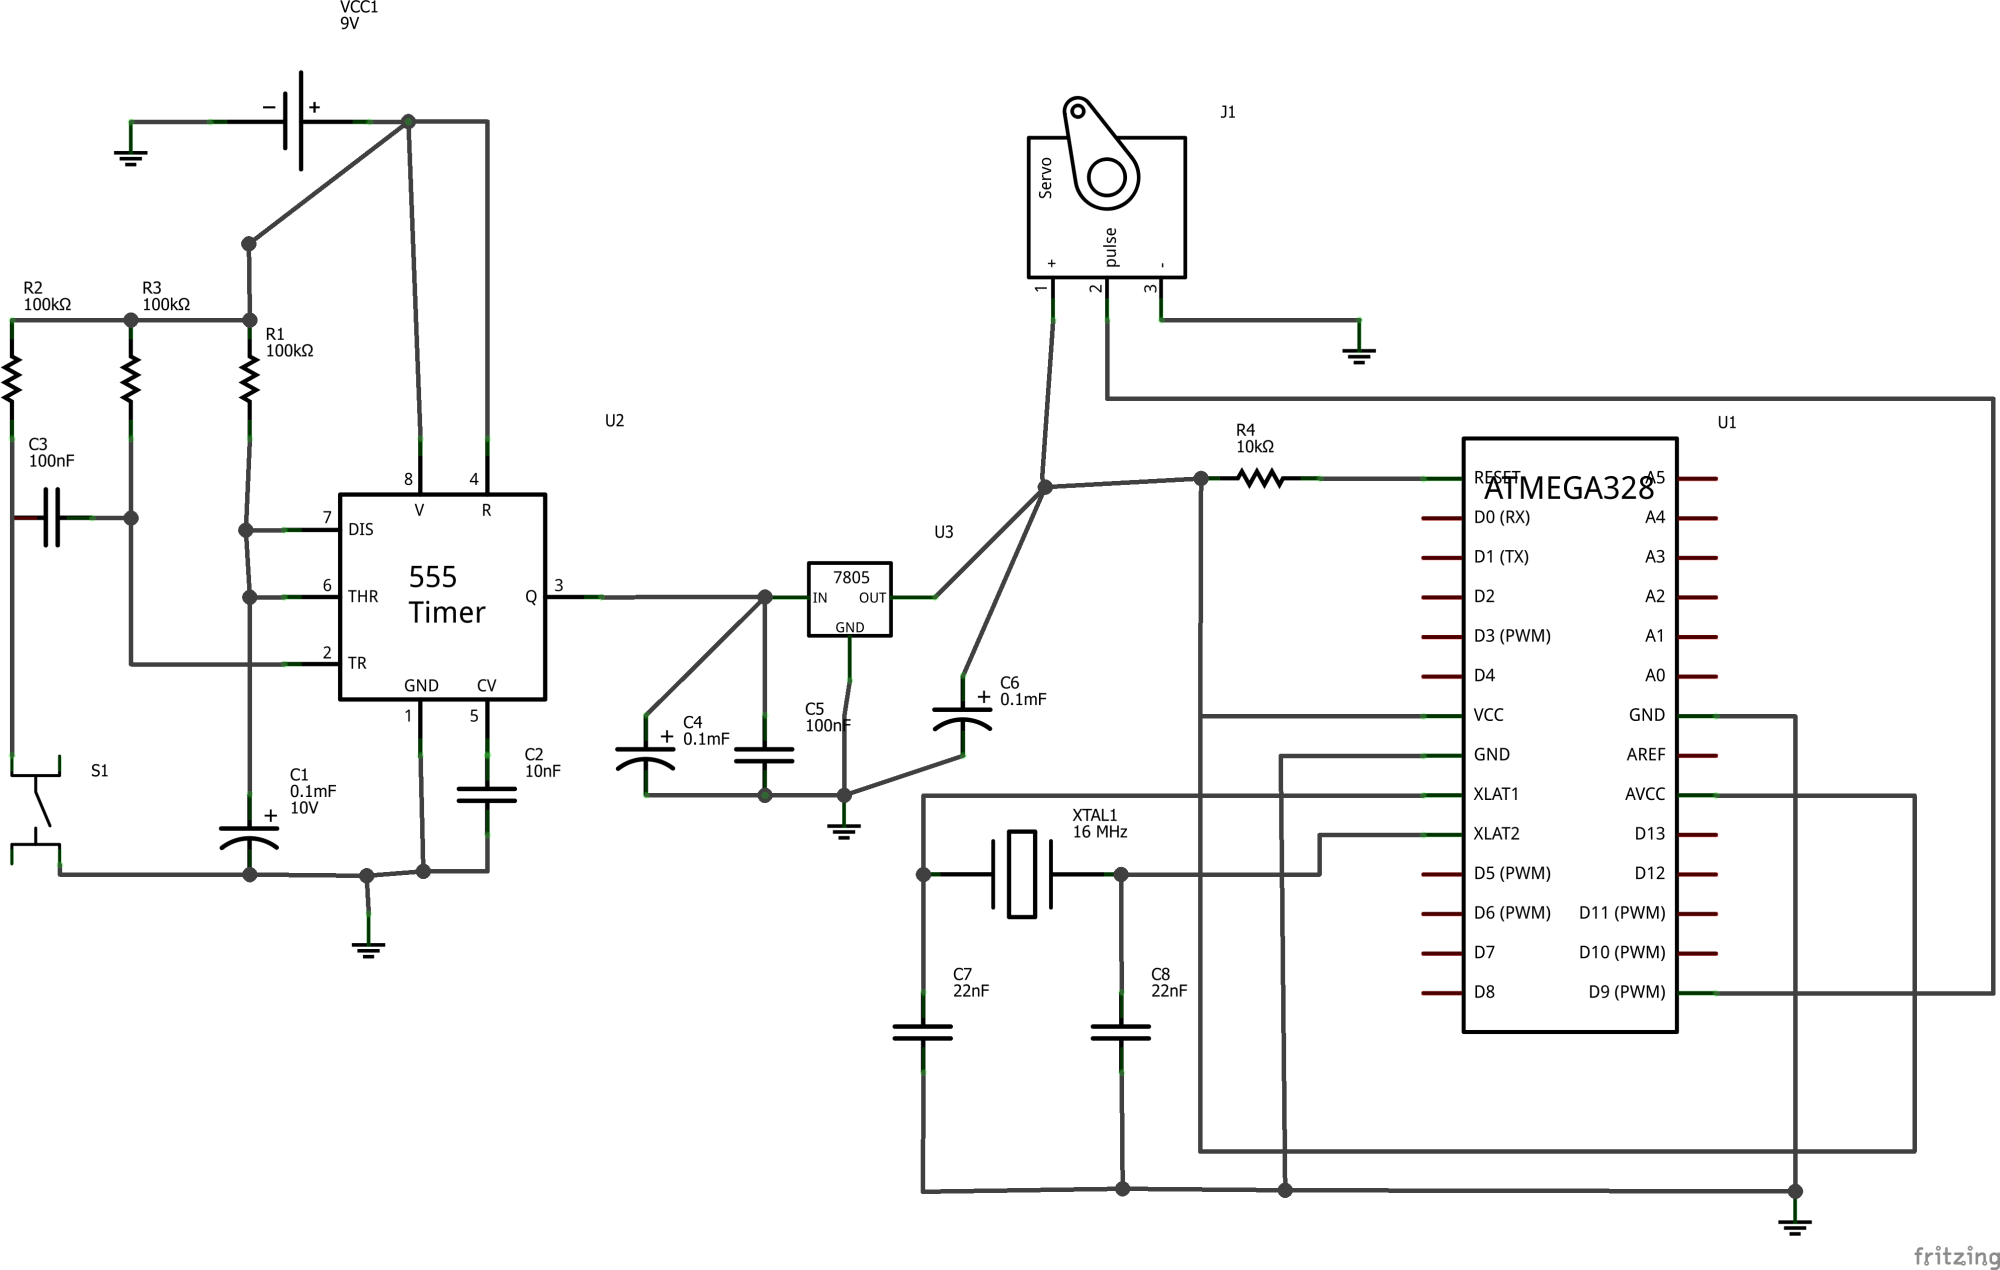 hight resolution of for a little explanation when the button is pressed the c is powered for about 10 sec the c contains code that moves the servo